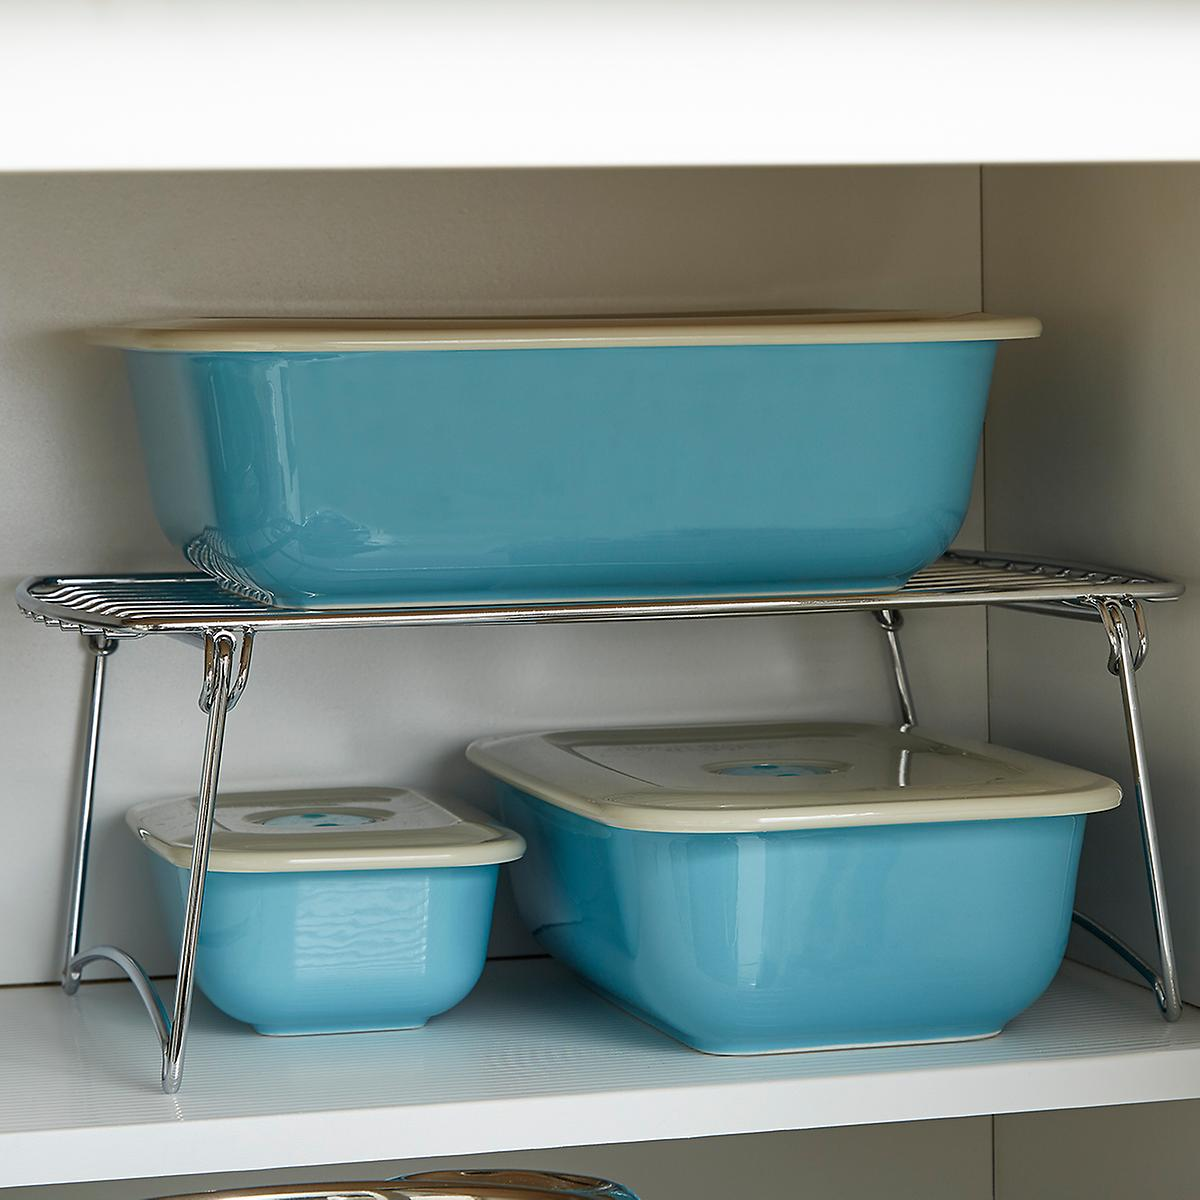 Lower Cabinet Organization Starter Kit | The Container Store